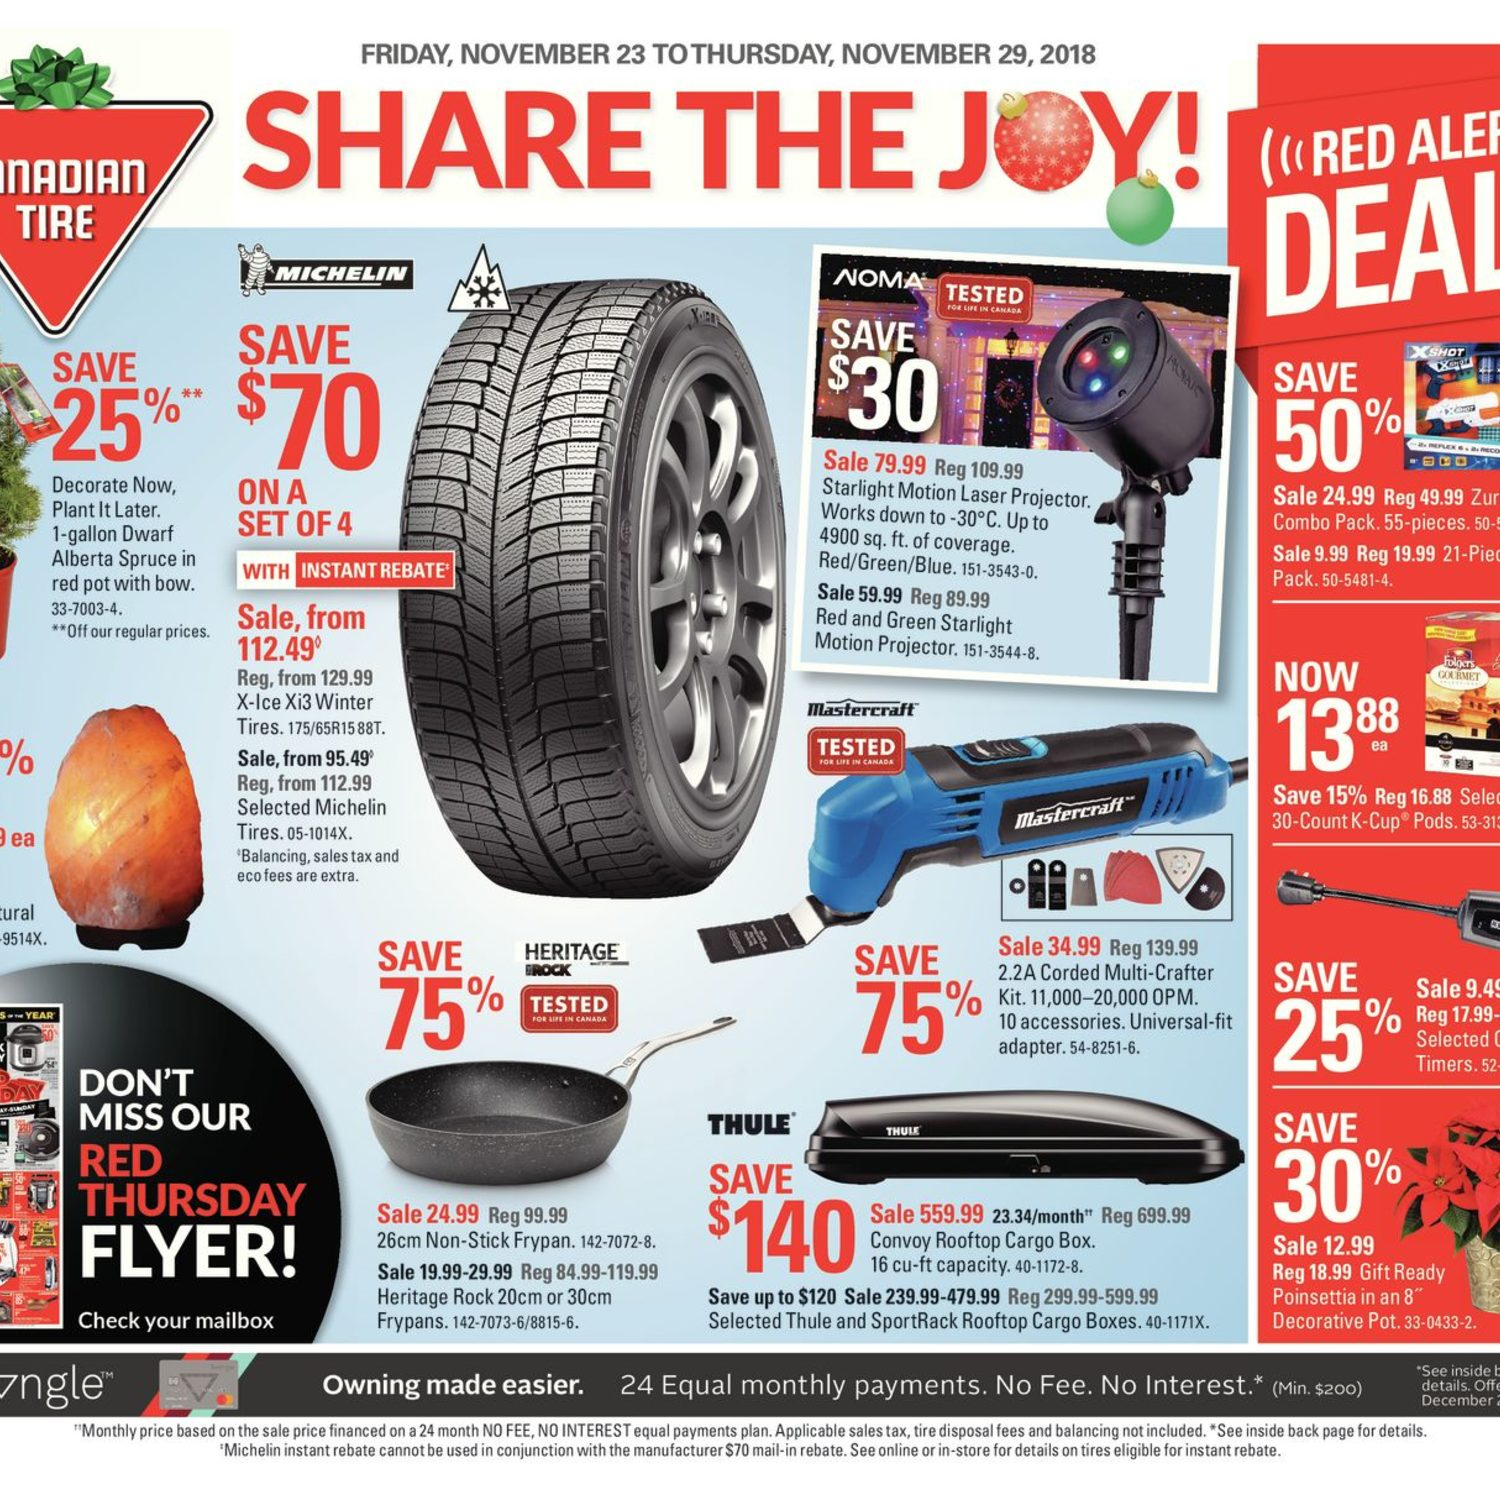 Canadian Tire Book Shelves Canadian Tire Weekly Flyer Weekly Share The Joy Nov 23 29